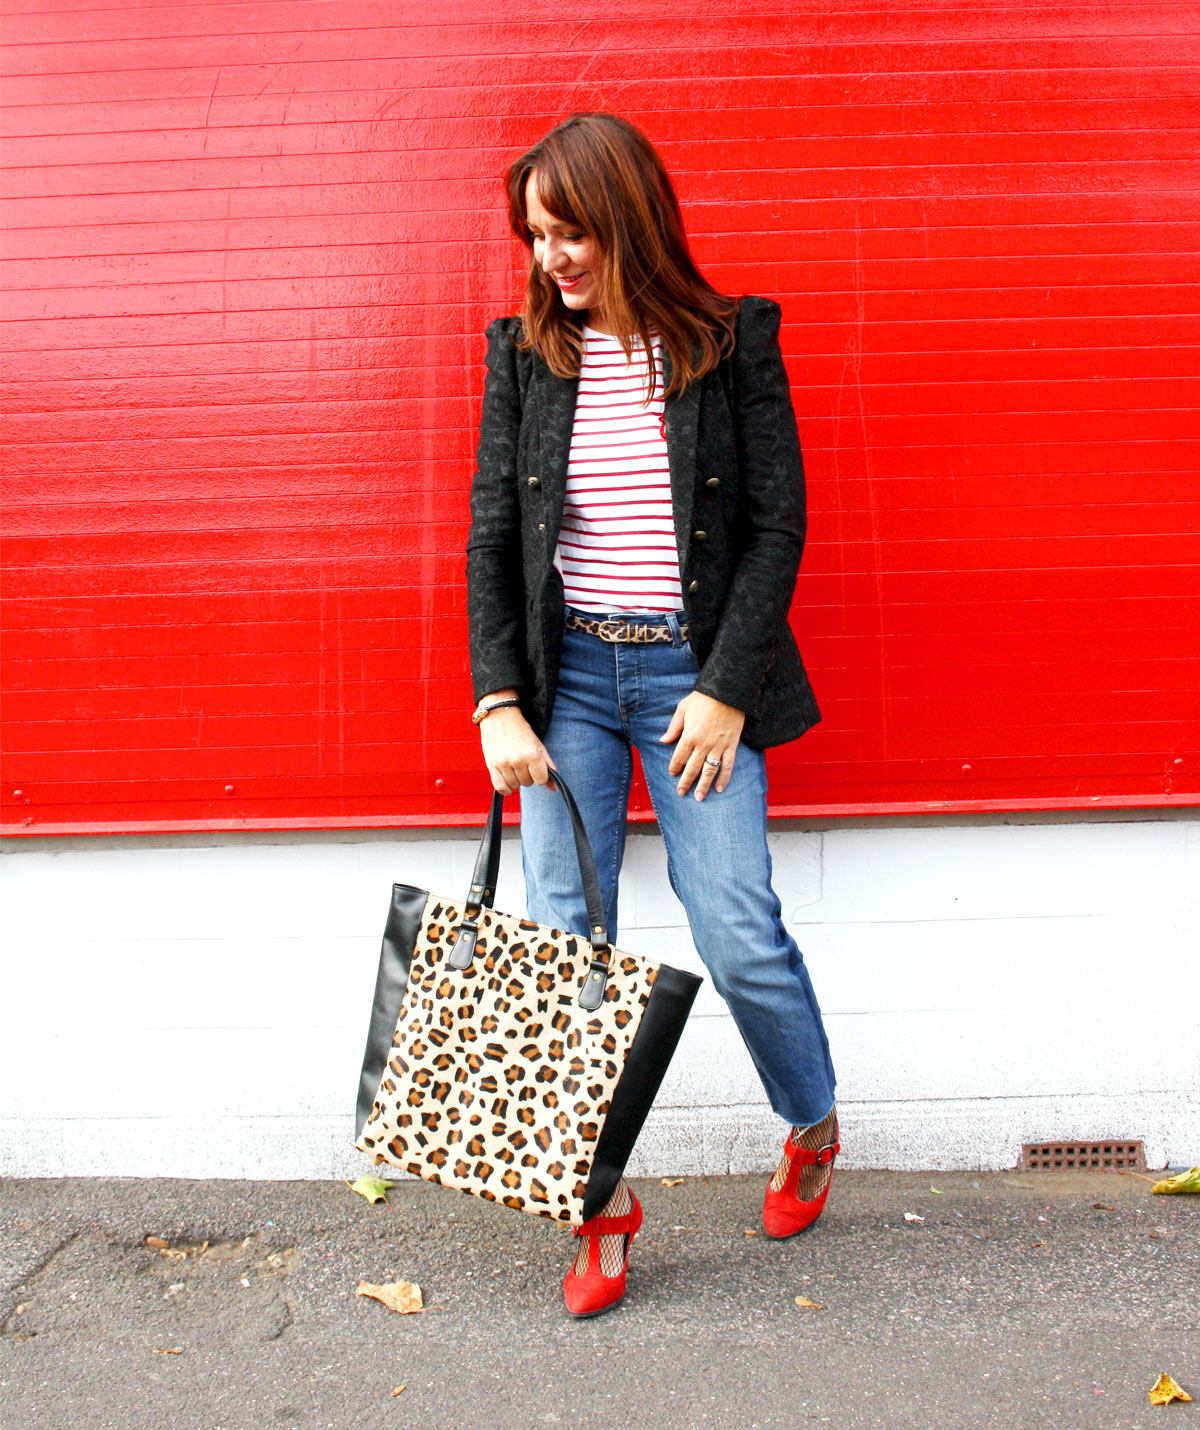 Leopard bag and red shoes